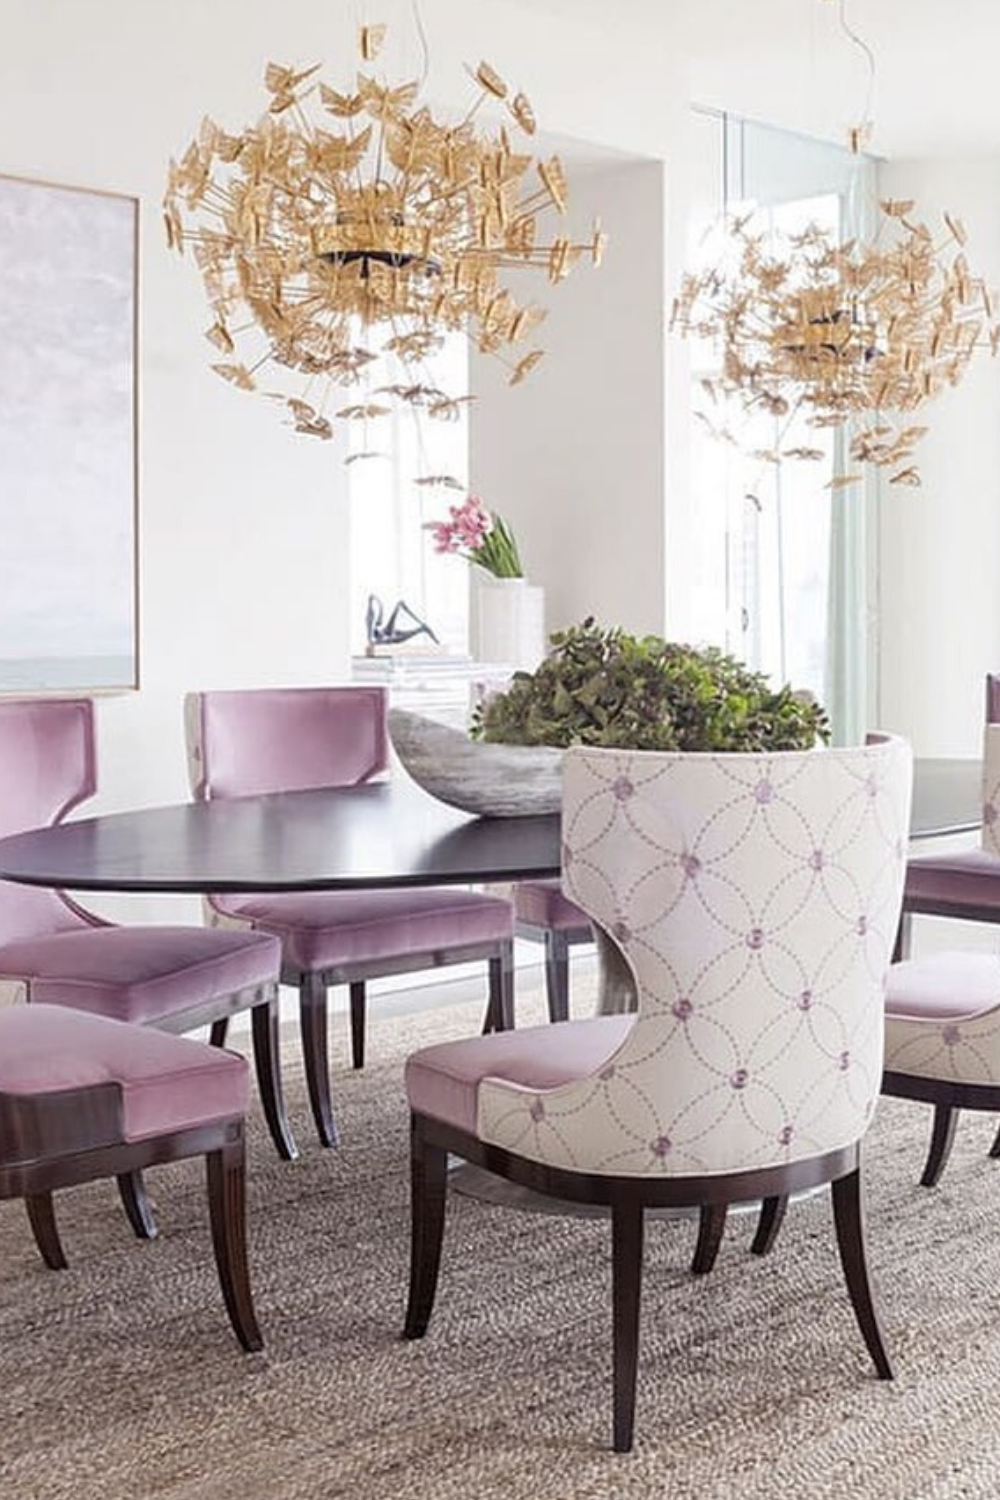 The Nymph chandelier's delicate metal butterflies hover in the air in the middle of the perfect lovely dining room harmony. Visit us for: #interior #decor #moderndecor #interiordecor #moderninteriordesign #contemporaryinteriors #besthomestyle #interiordesign #luxury #interiors #interiordesign #homedecor #diningroom